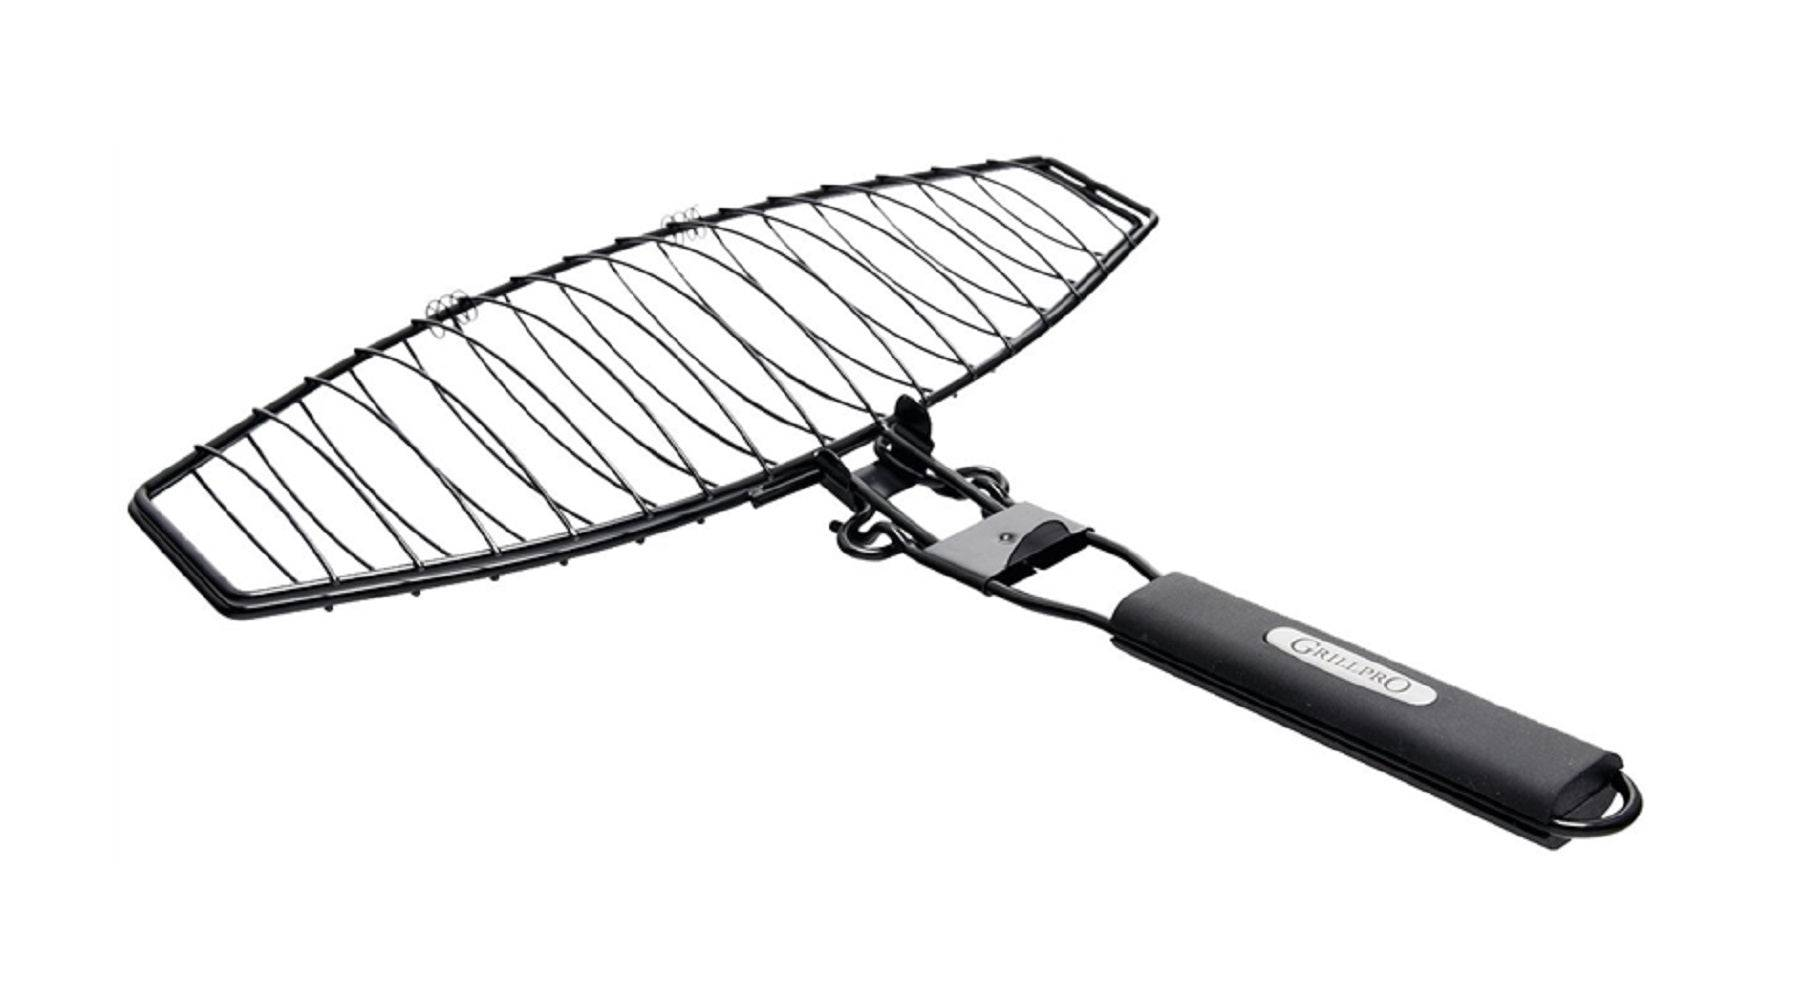 Grill Pro 21015 Non-stick Large Fish Basket, Chrome Plated, Steel, 16-3/4 Inch